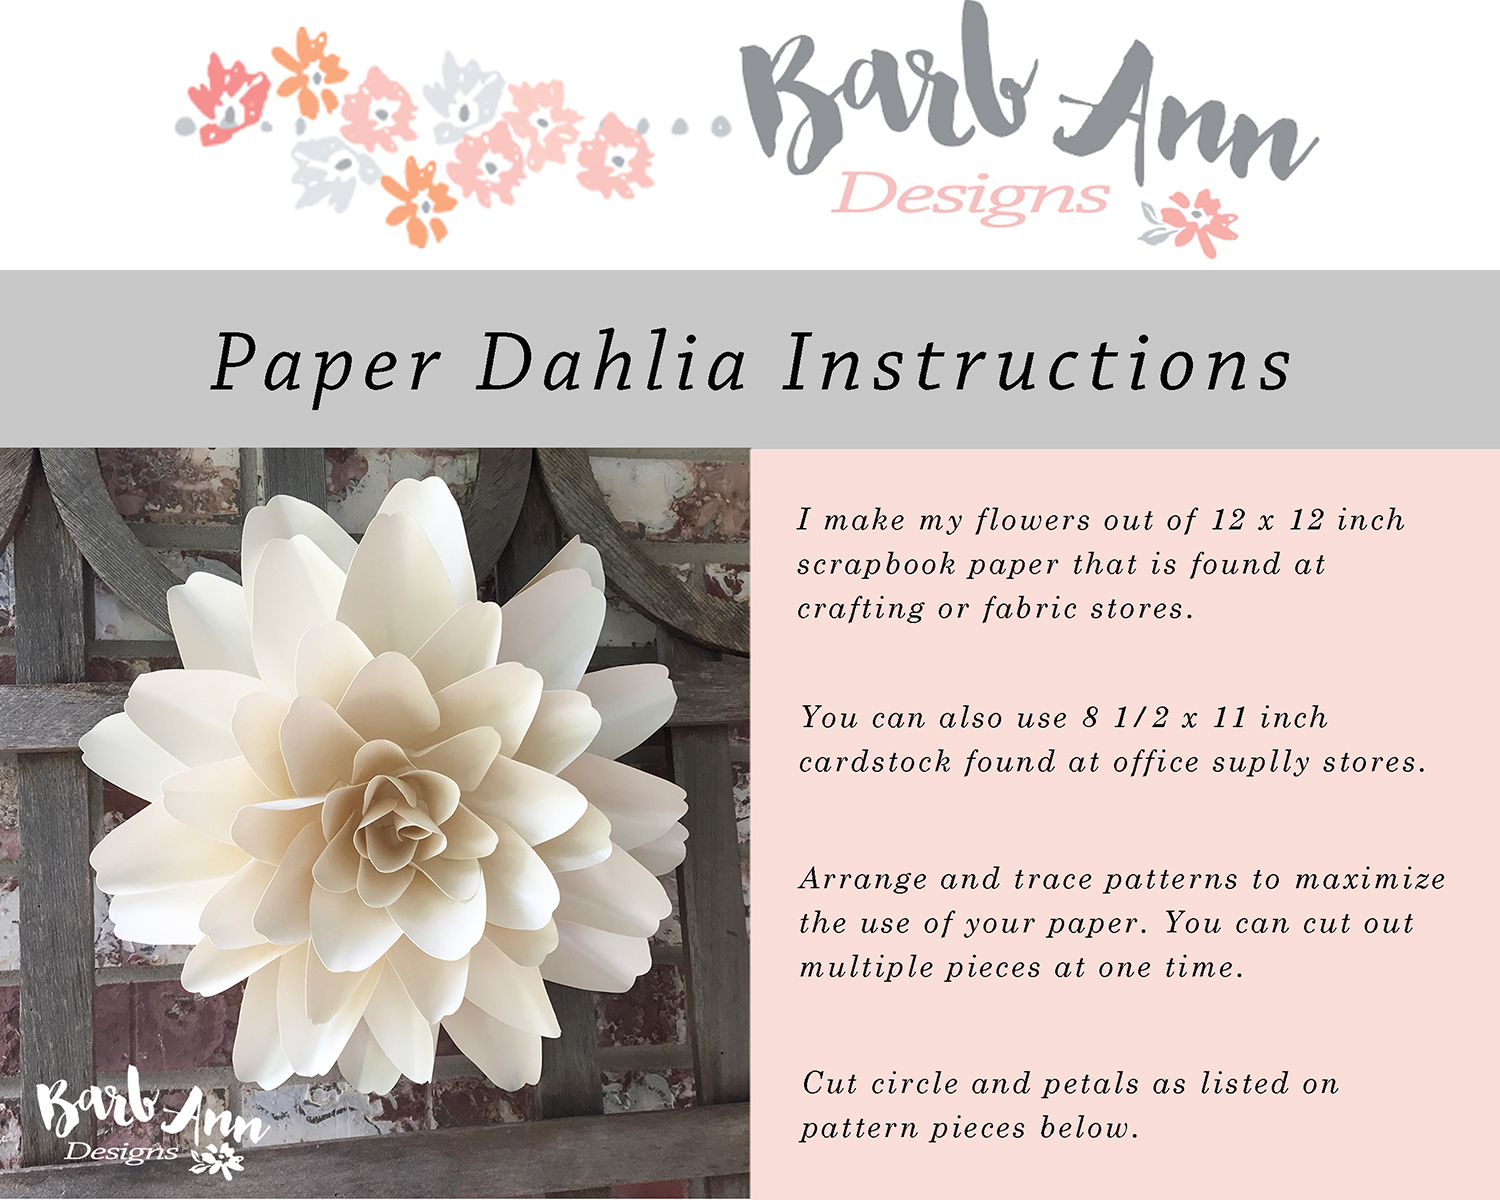 Dahlia Paper Flower Video Tutorial Barb Ann Designs